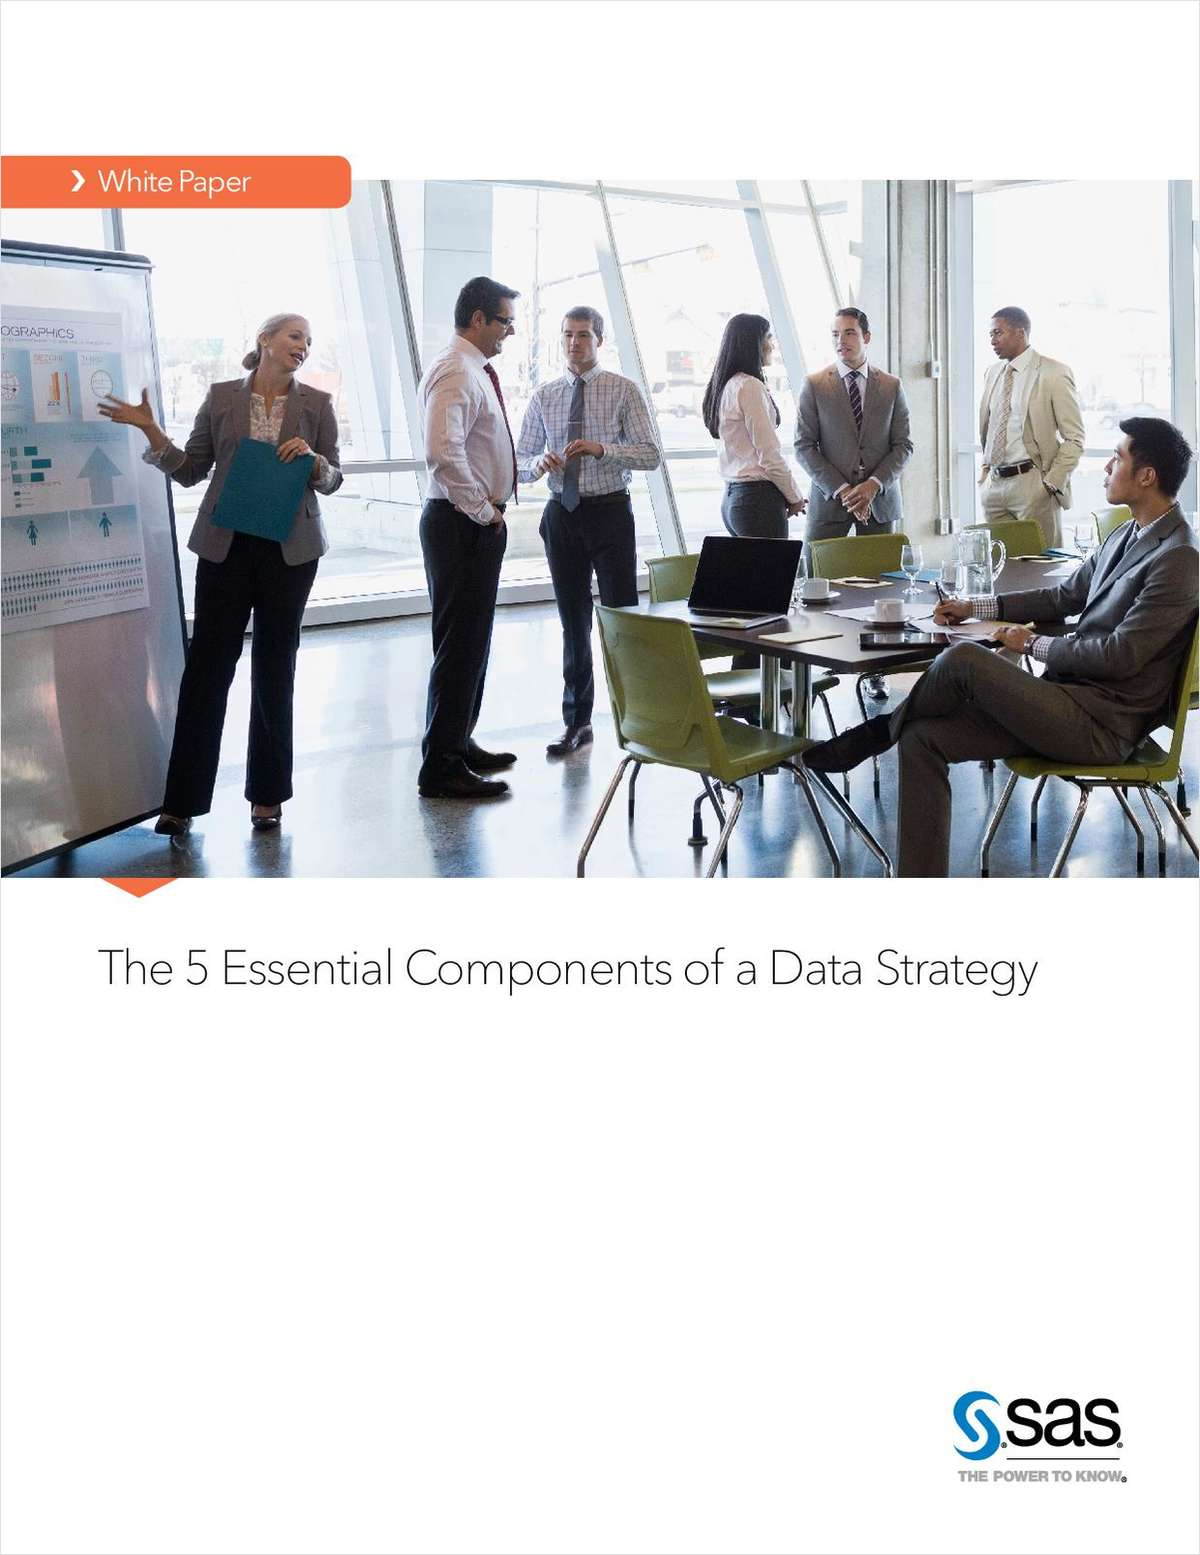 5 Essential Components of a Data Strategy